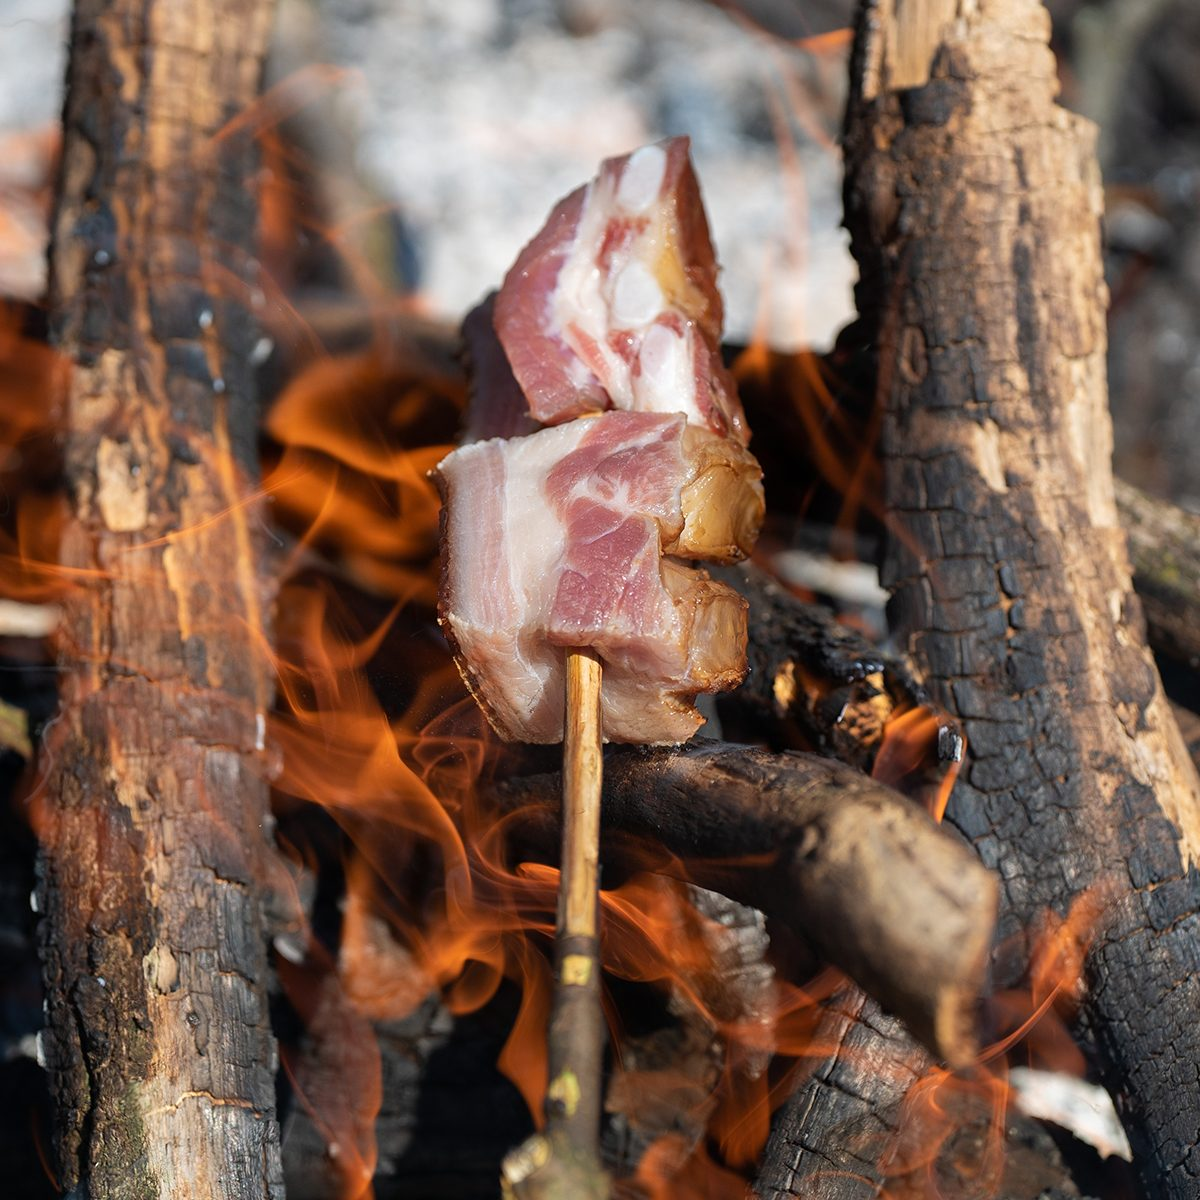 bacon baking spit on fire barbecue camping in the nature stock photo